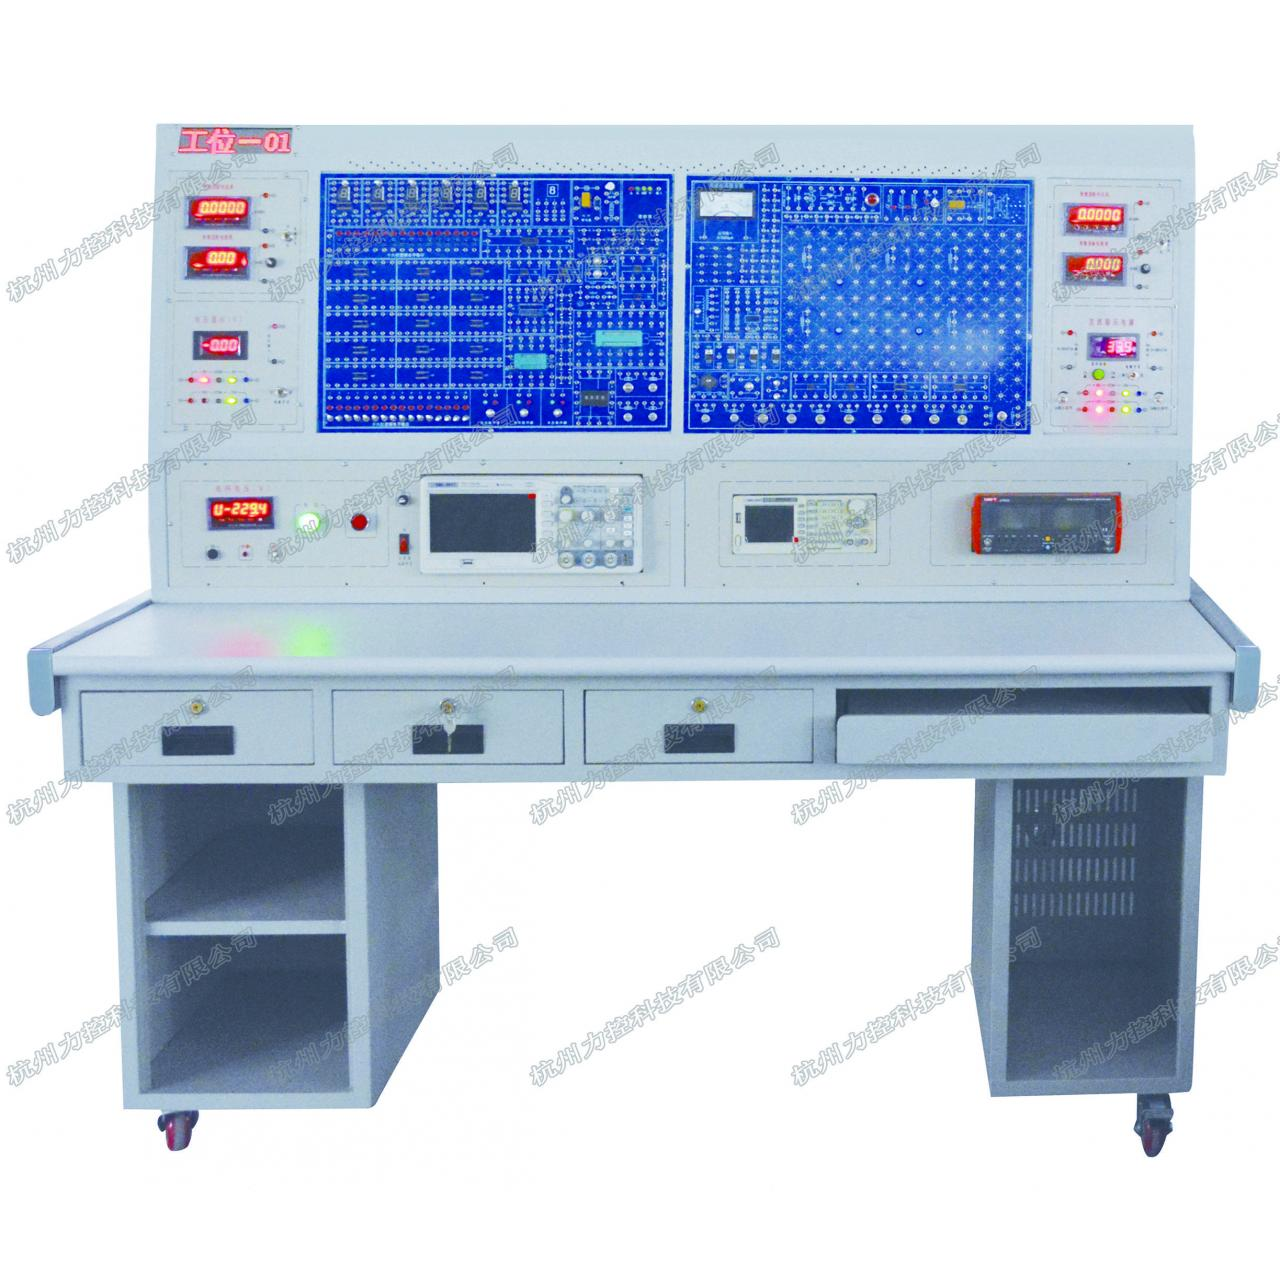 Experiment and training series of electronics